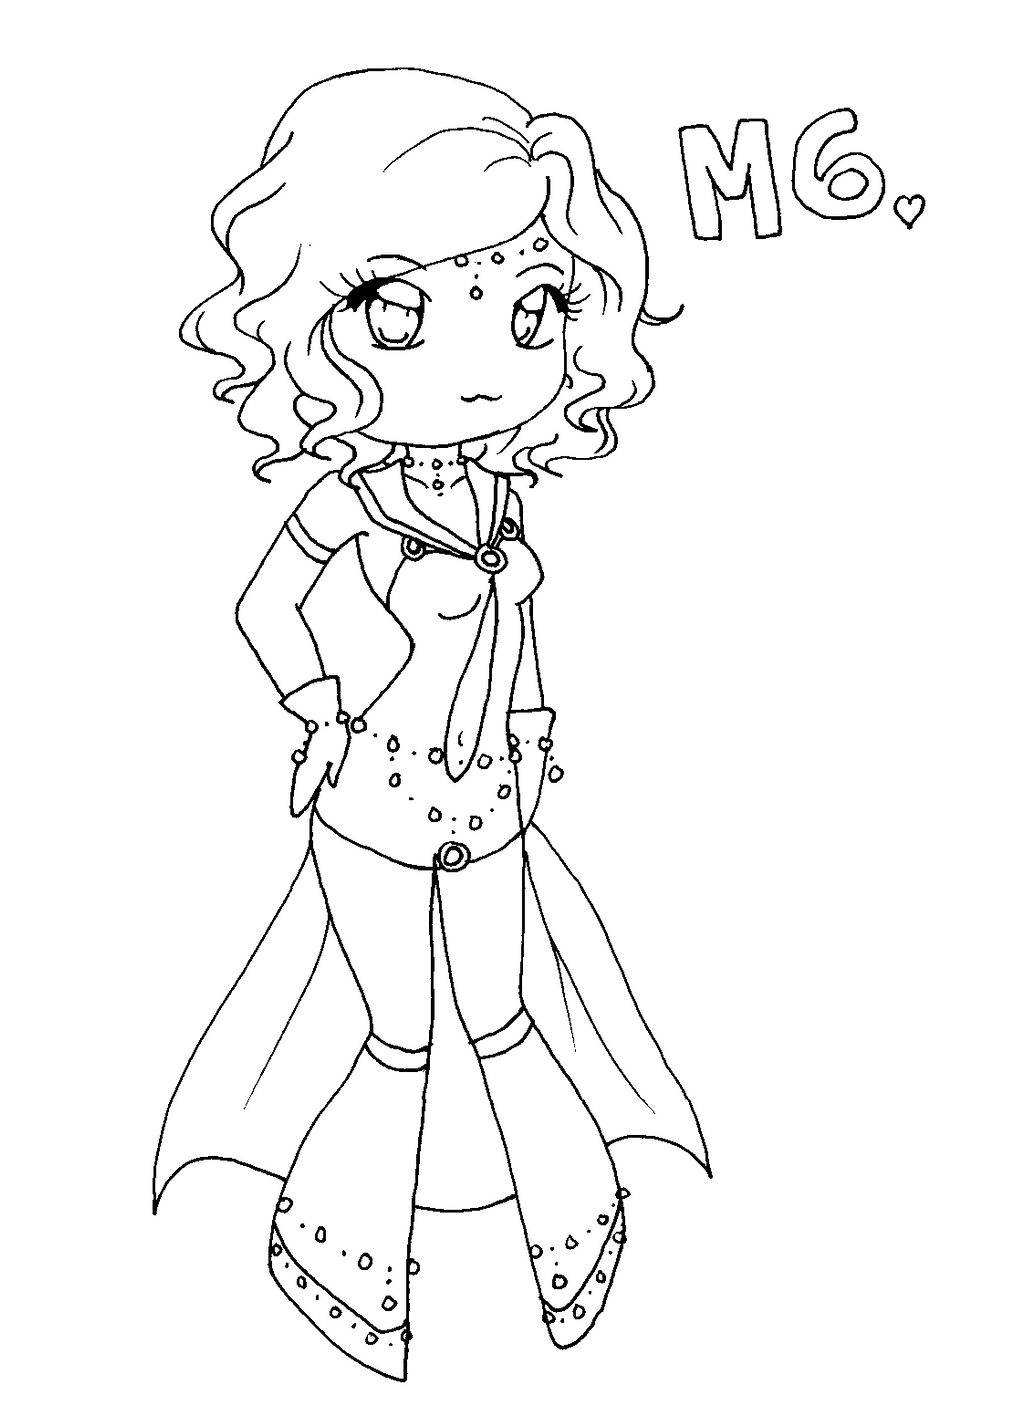 Chibi messier 6 coloring page by pandanalove on deviantart for Chibi coloring pages